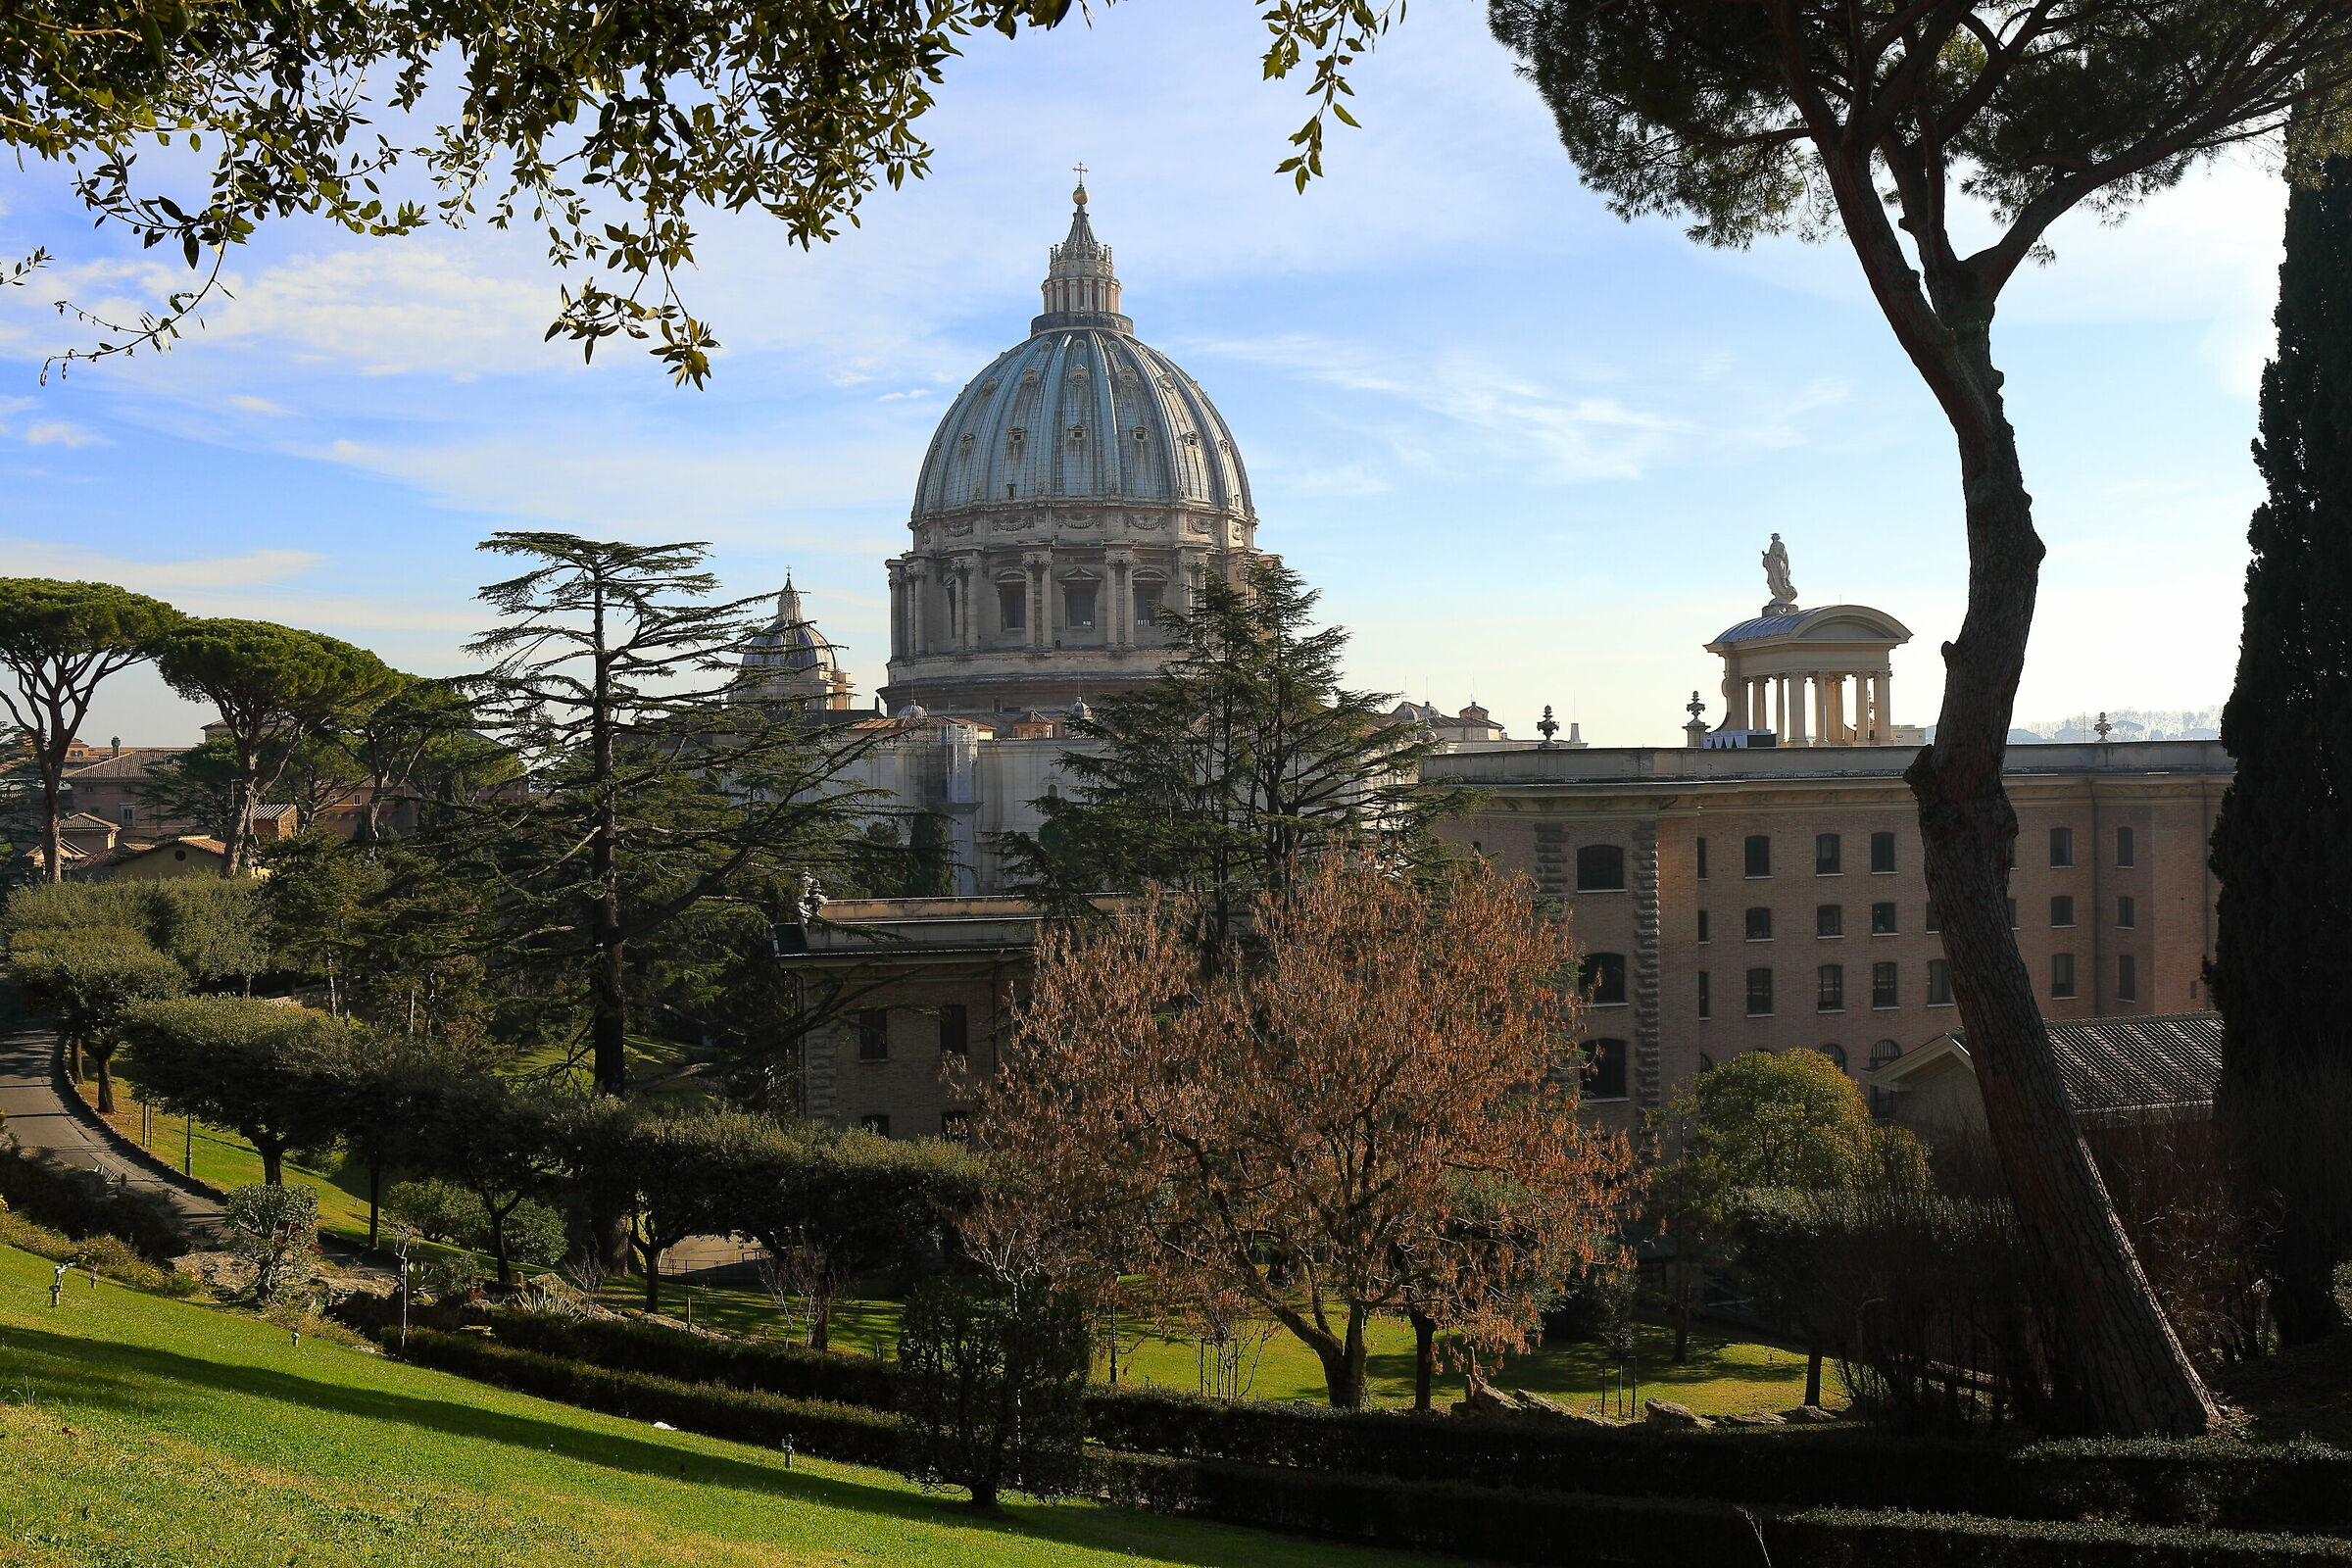 St. Peter from the Vatican Gardens...